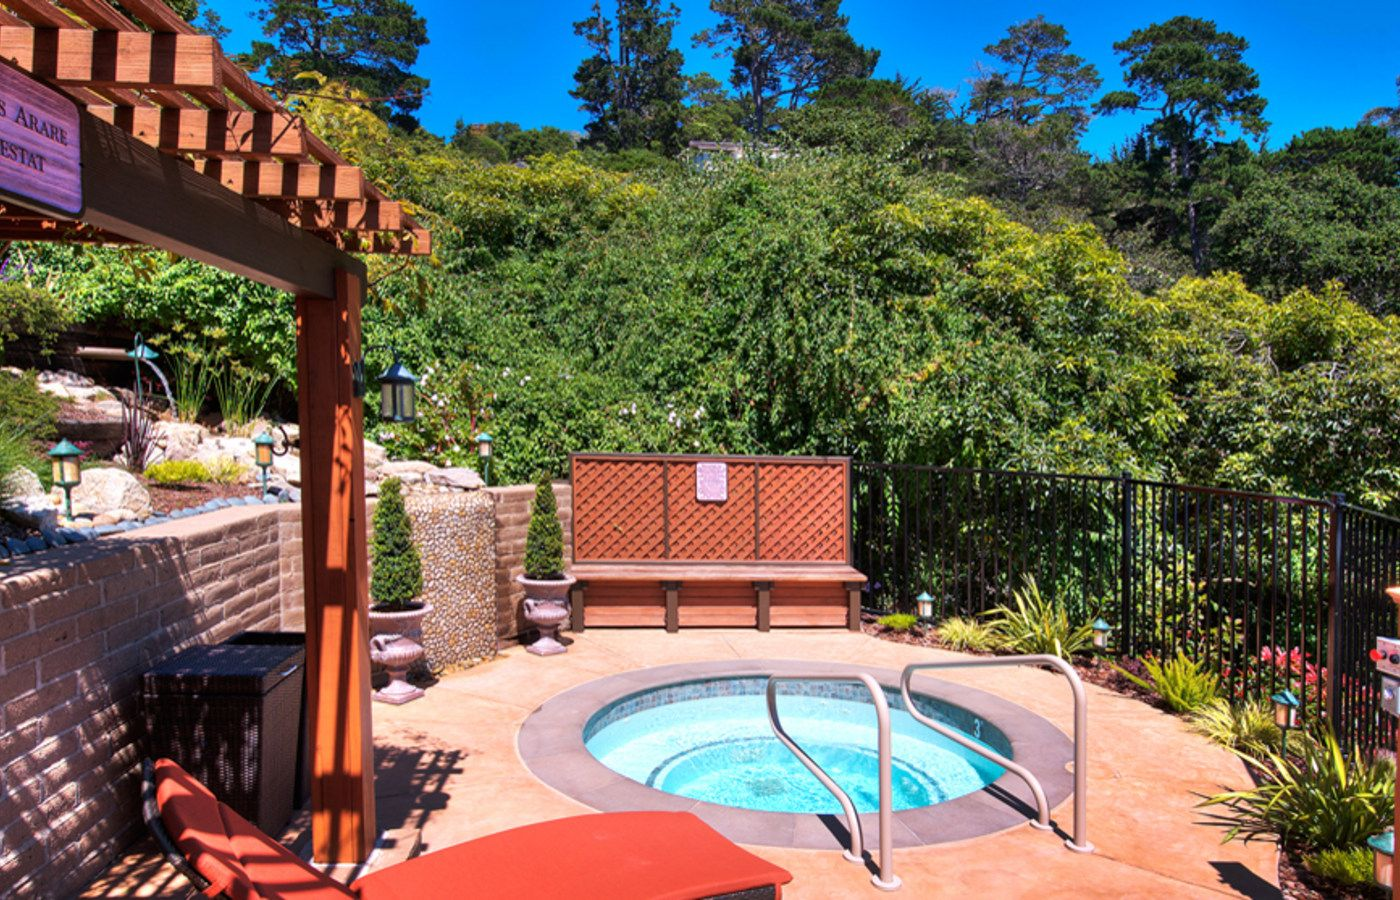 Luxury Hotels Carmel Ca Tickle Pink Inn Sur California